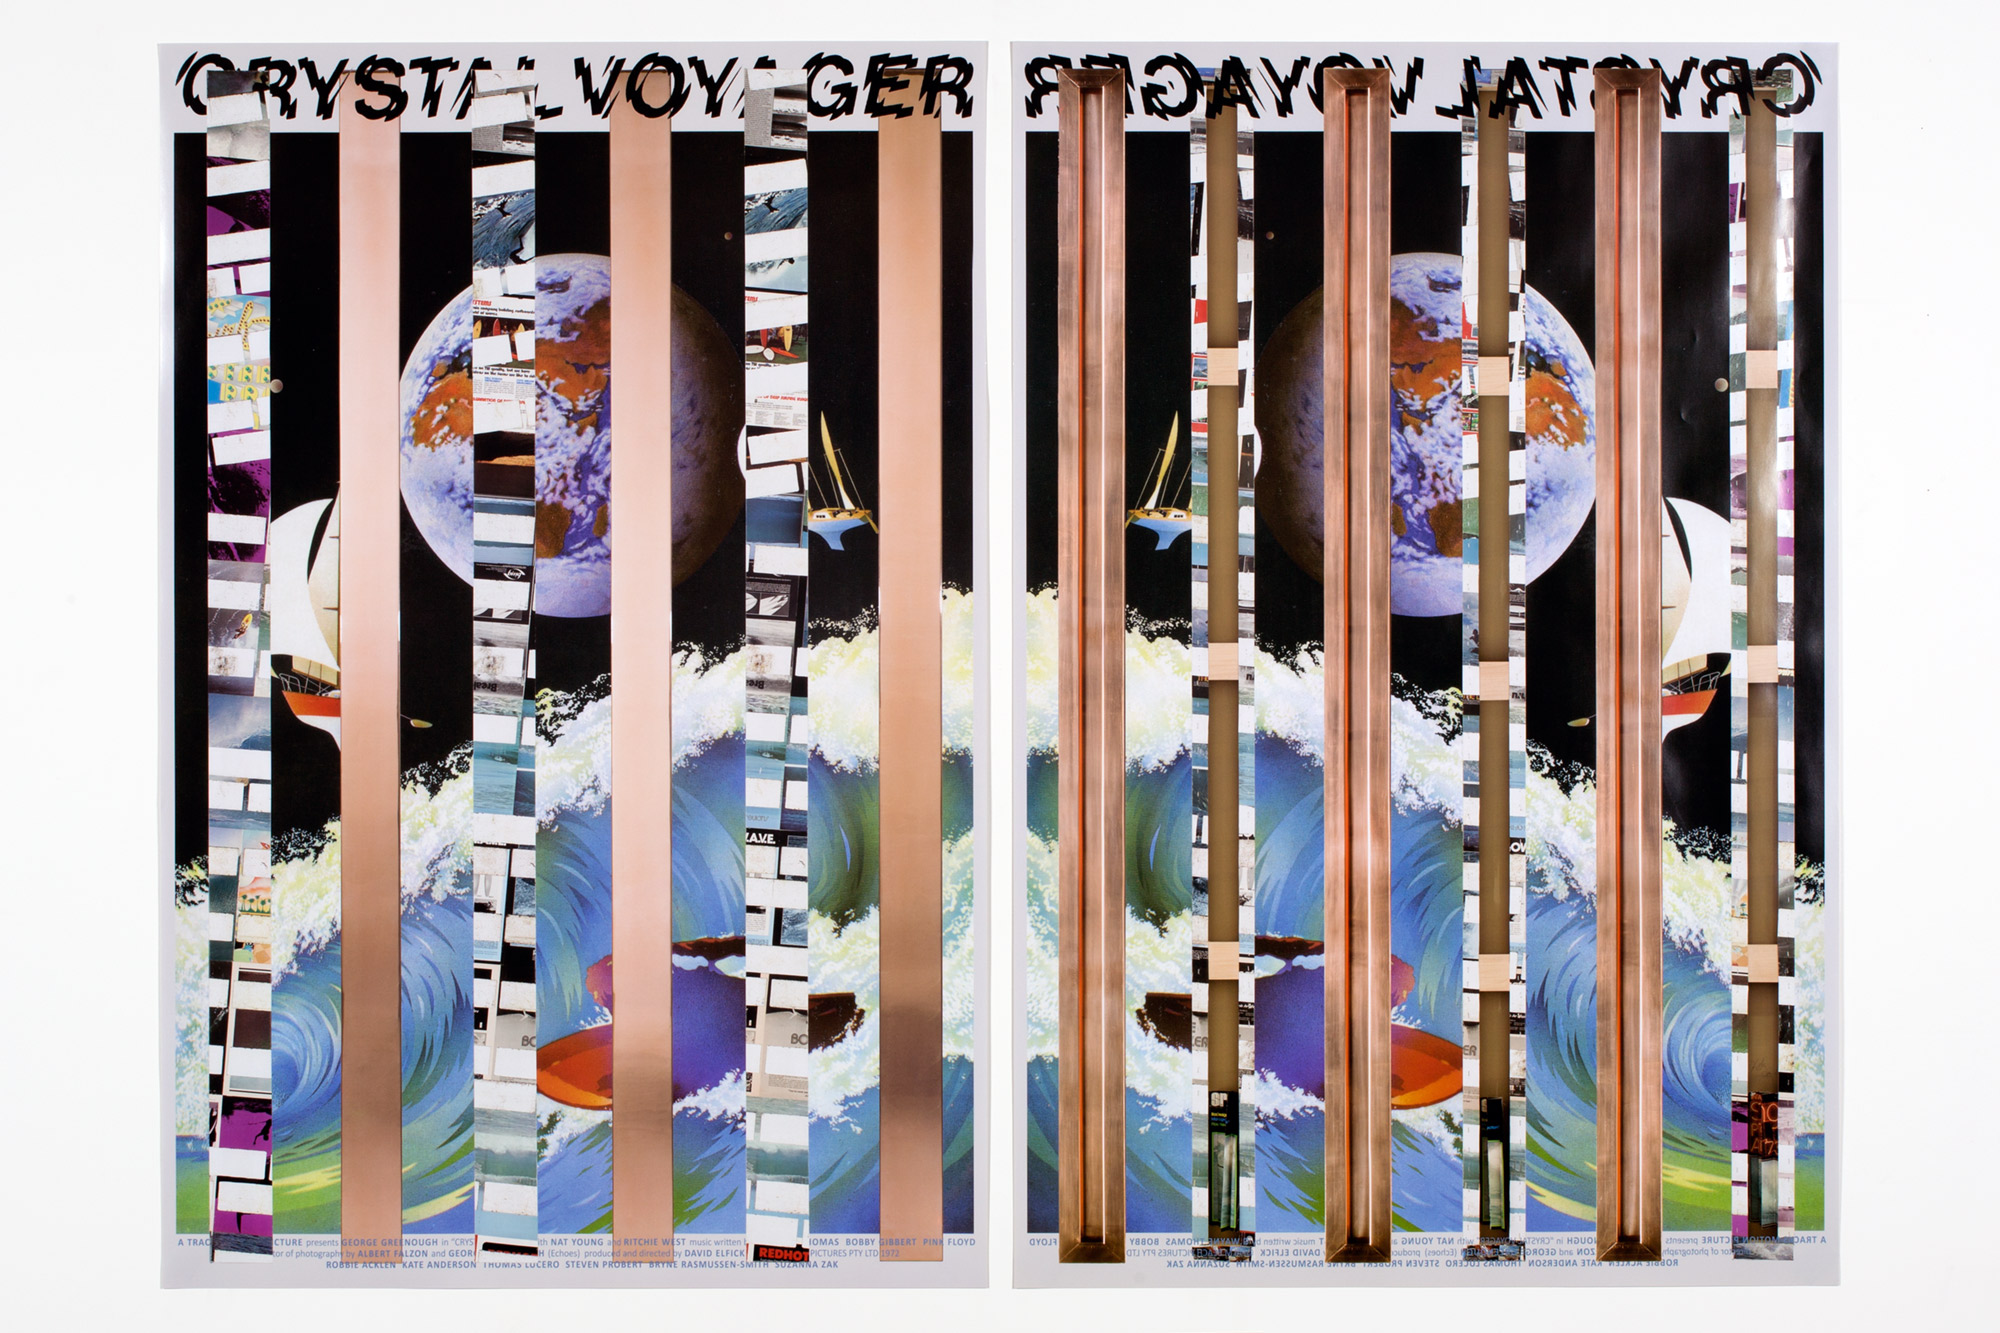 Crystal Voyager poster   With Kelley Walker  Paula Cooper Gallery  New York  New York  2014